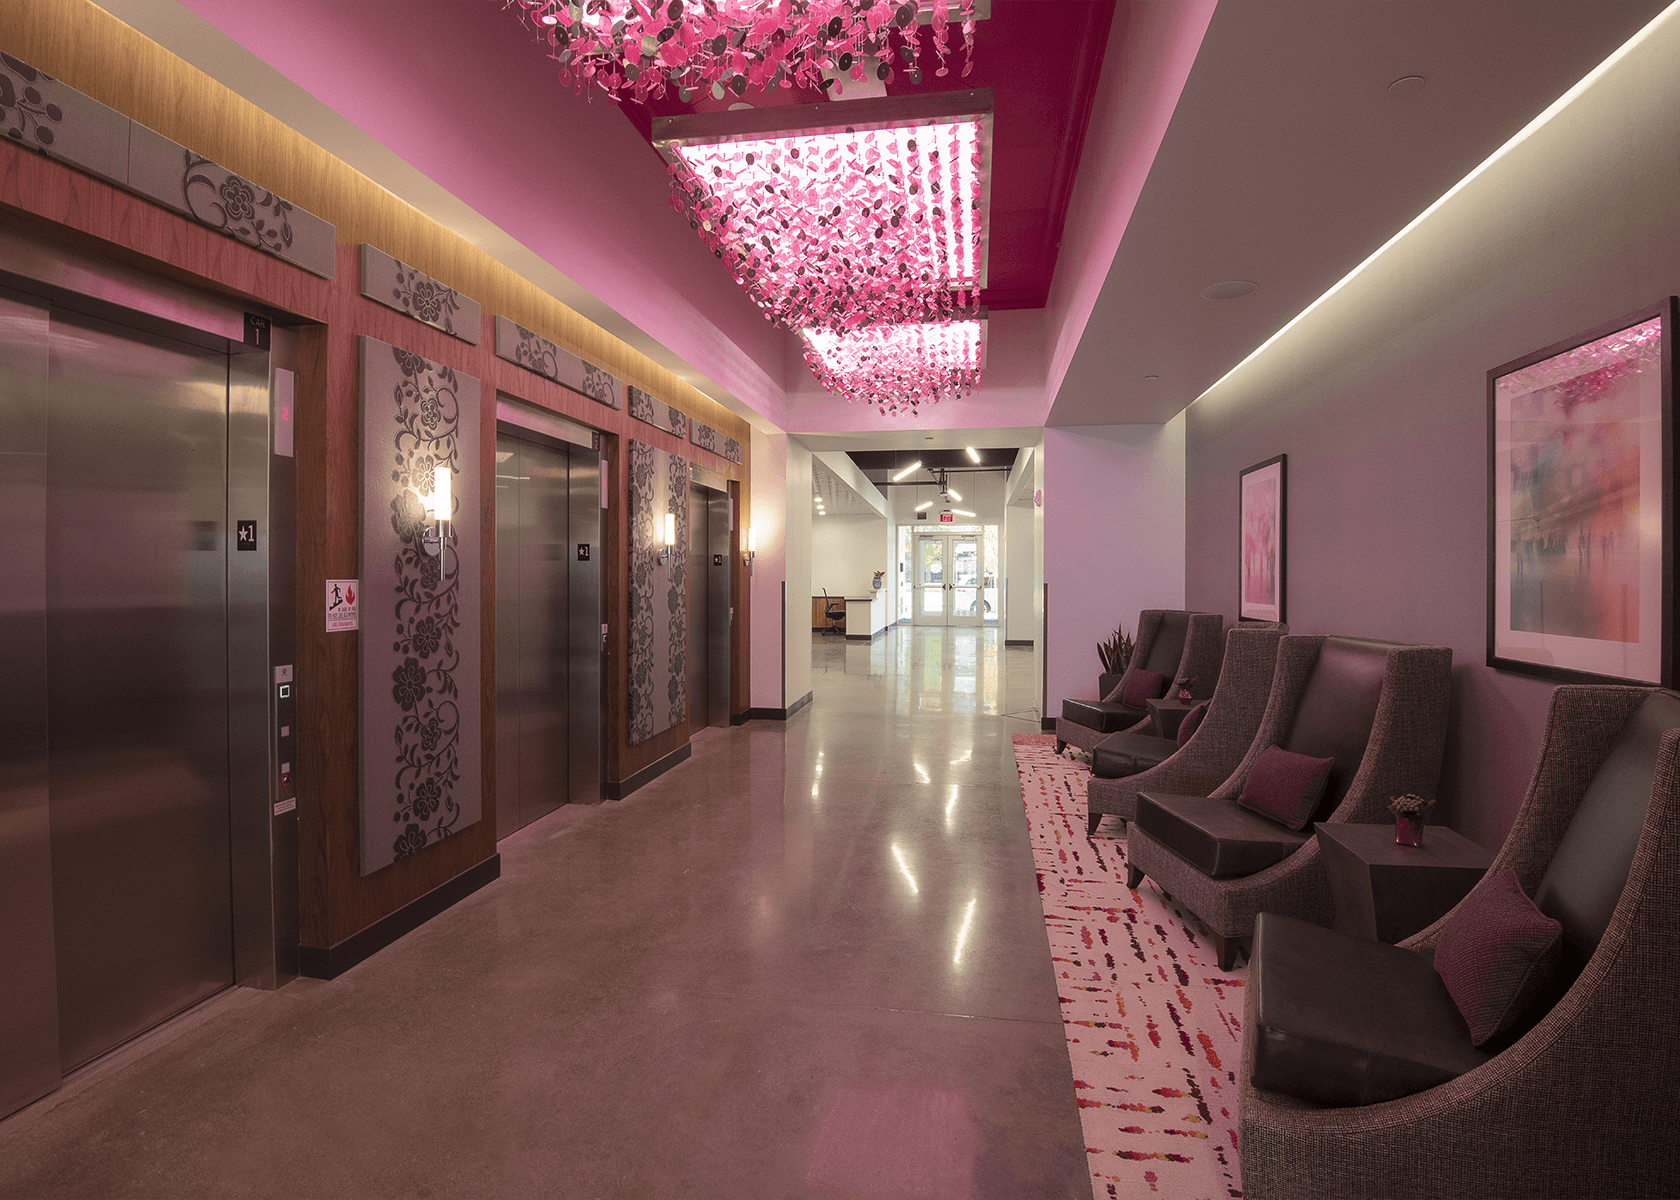 Hallway with chairs and and pink lighting